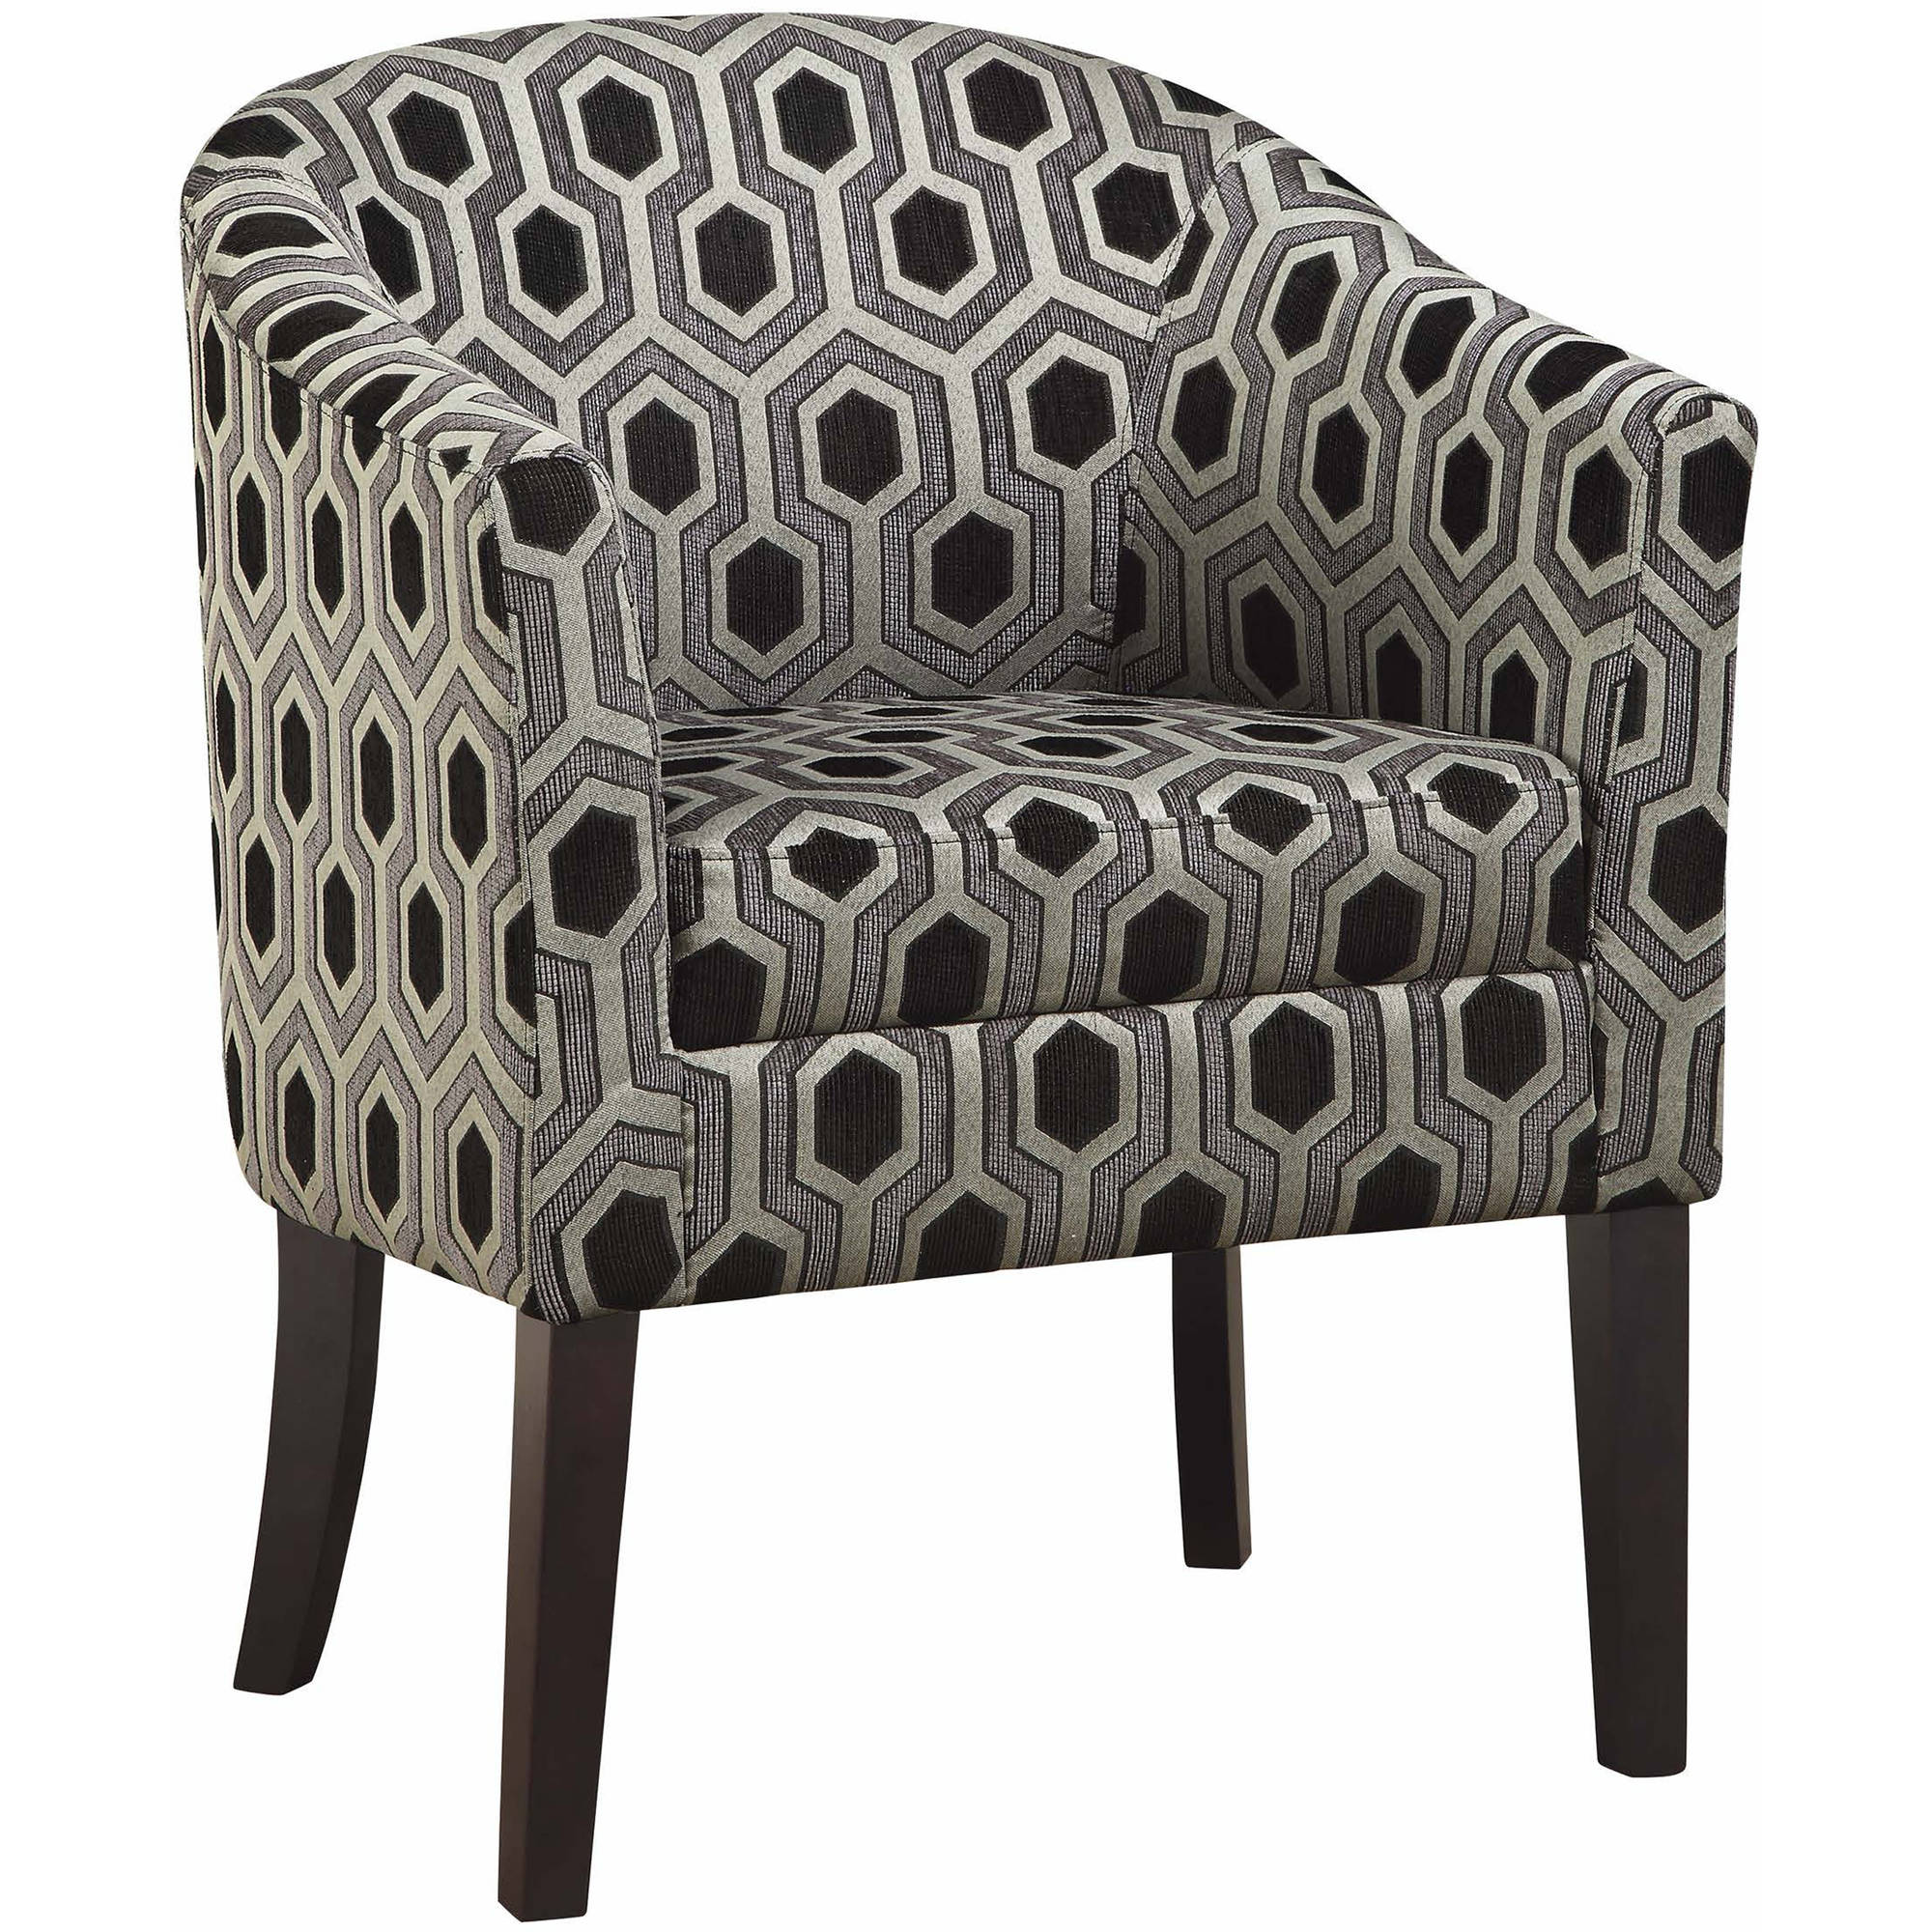 Coaster Company Accent Chair, Grey Black by Coaster Company